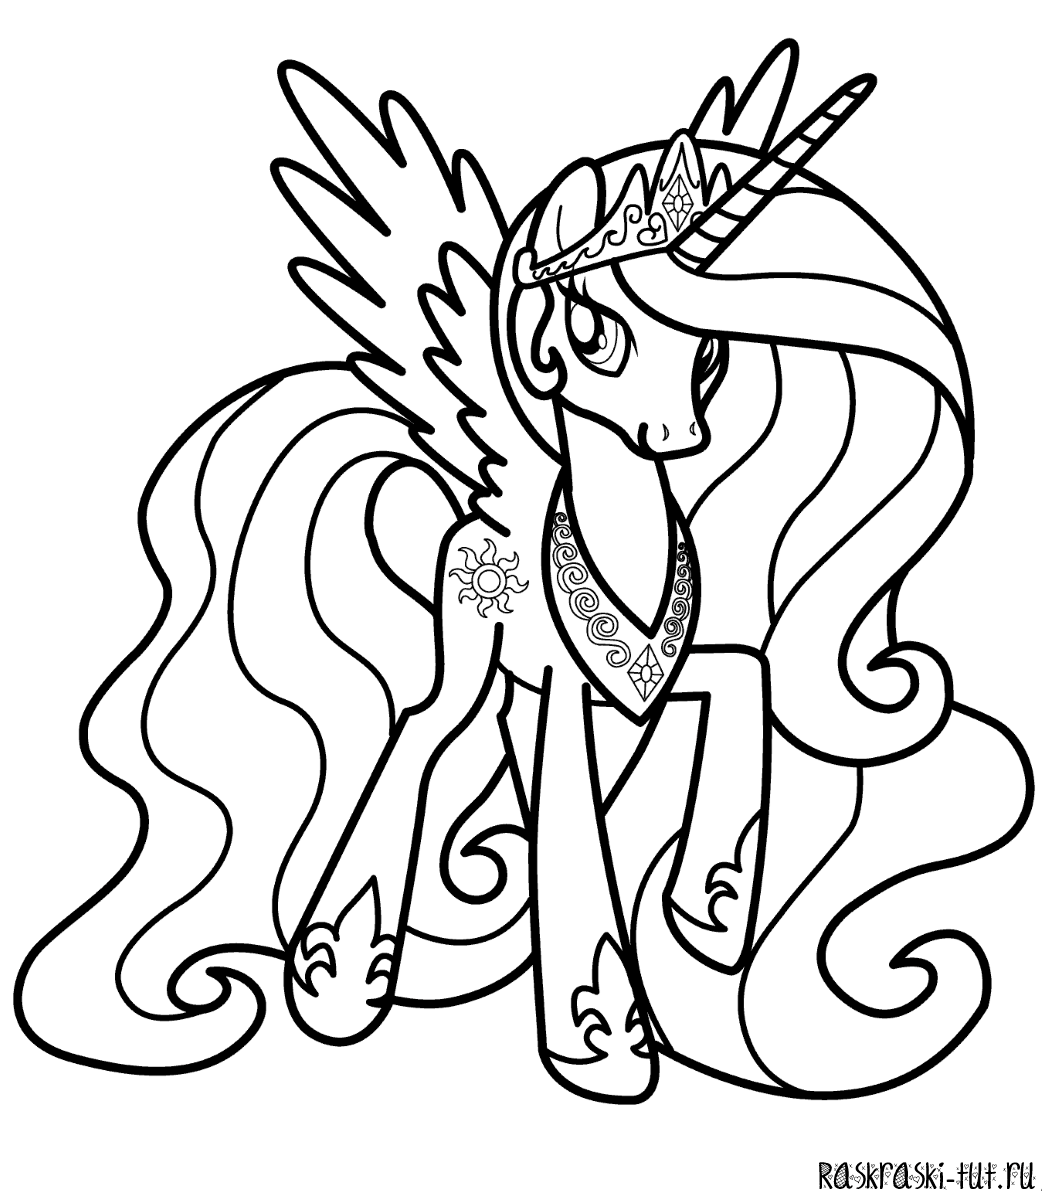 Mi Peque F1o Pony Para Colorear Pinkie Pie also Equestria Girls Coloring Pages besides 79982 Princess Twilight Sparkle Coloring Page together with My Little Pony Coloring Pages Free Printable likewise Dibujos Para Colorear De Fluttershy De. on mlp friendship is magic coloring pages